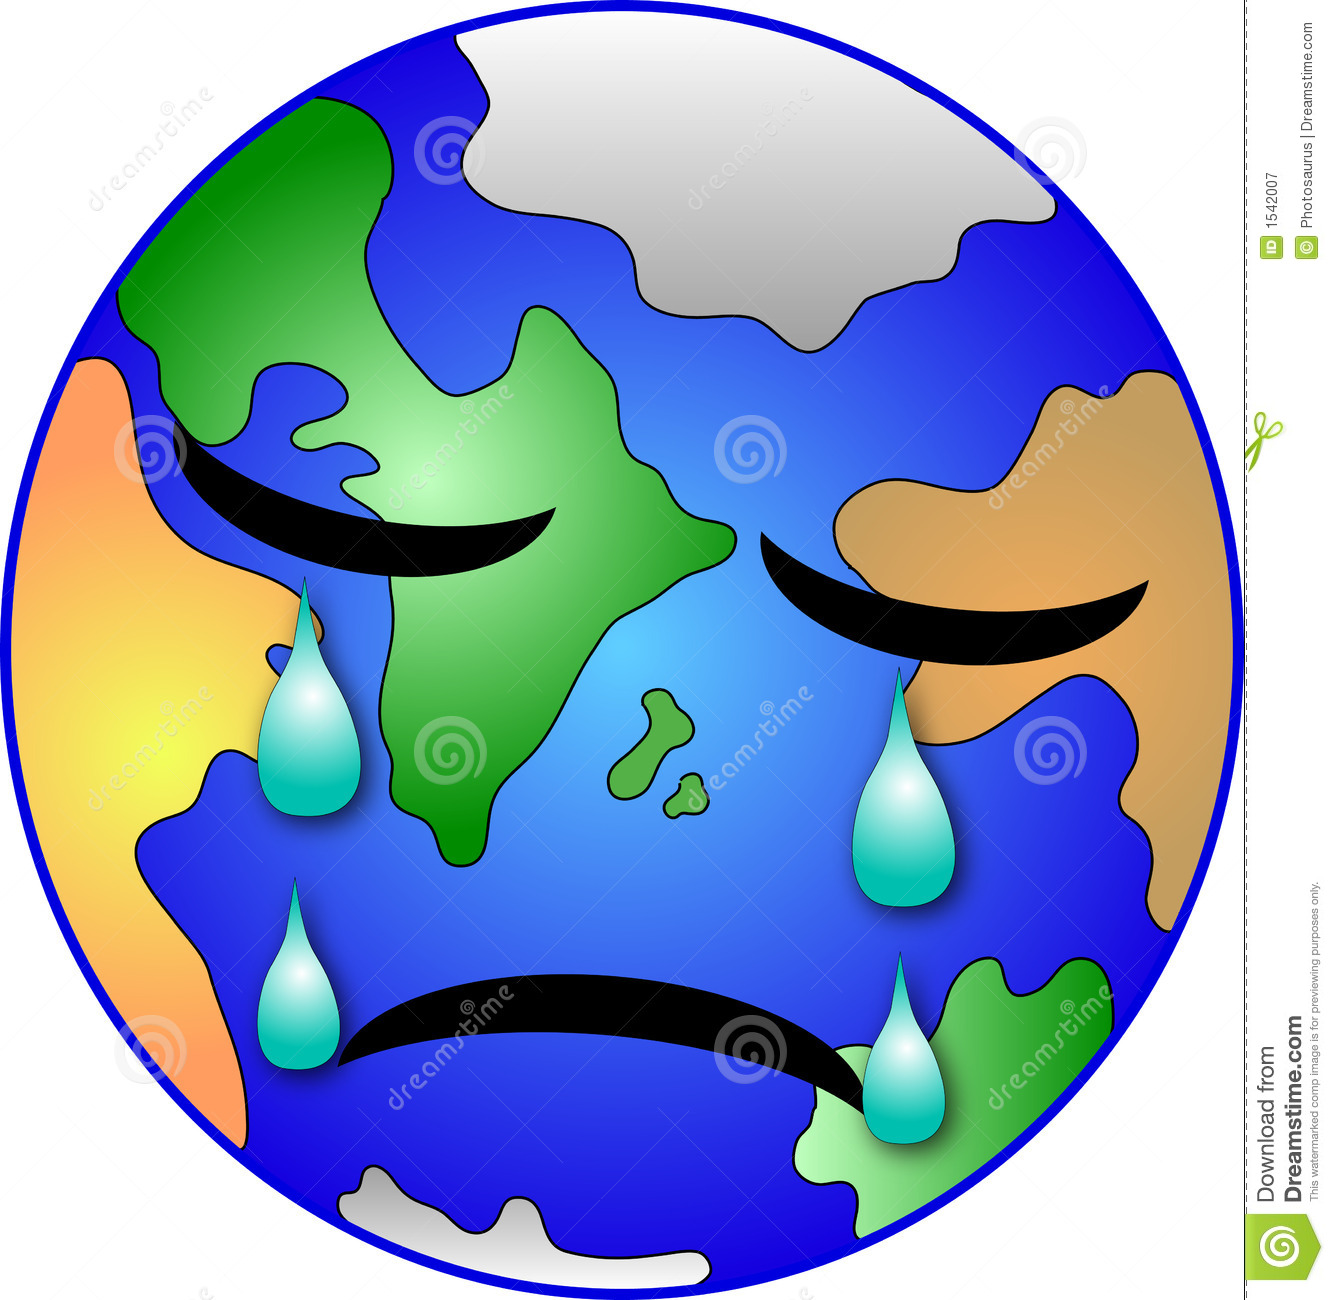 earth clipart animation - photo #40